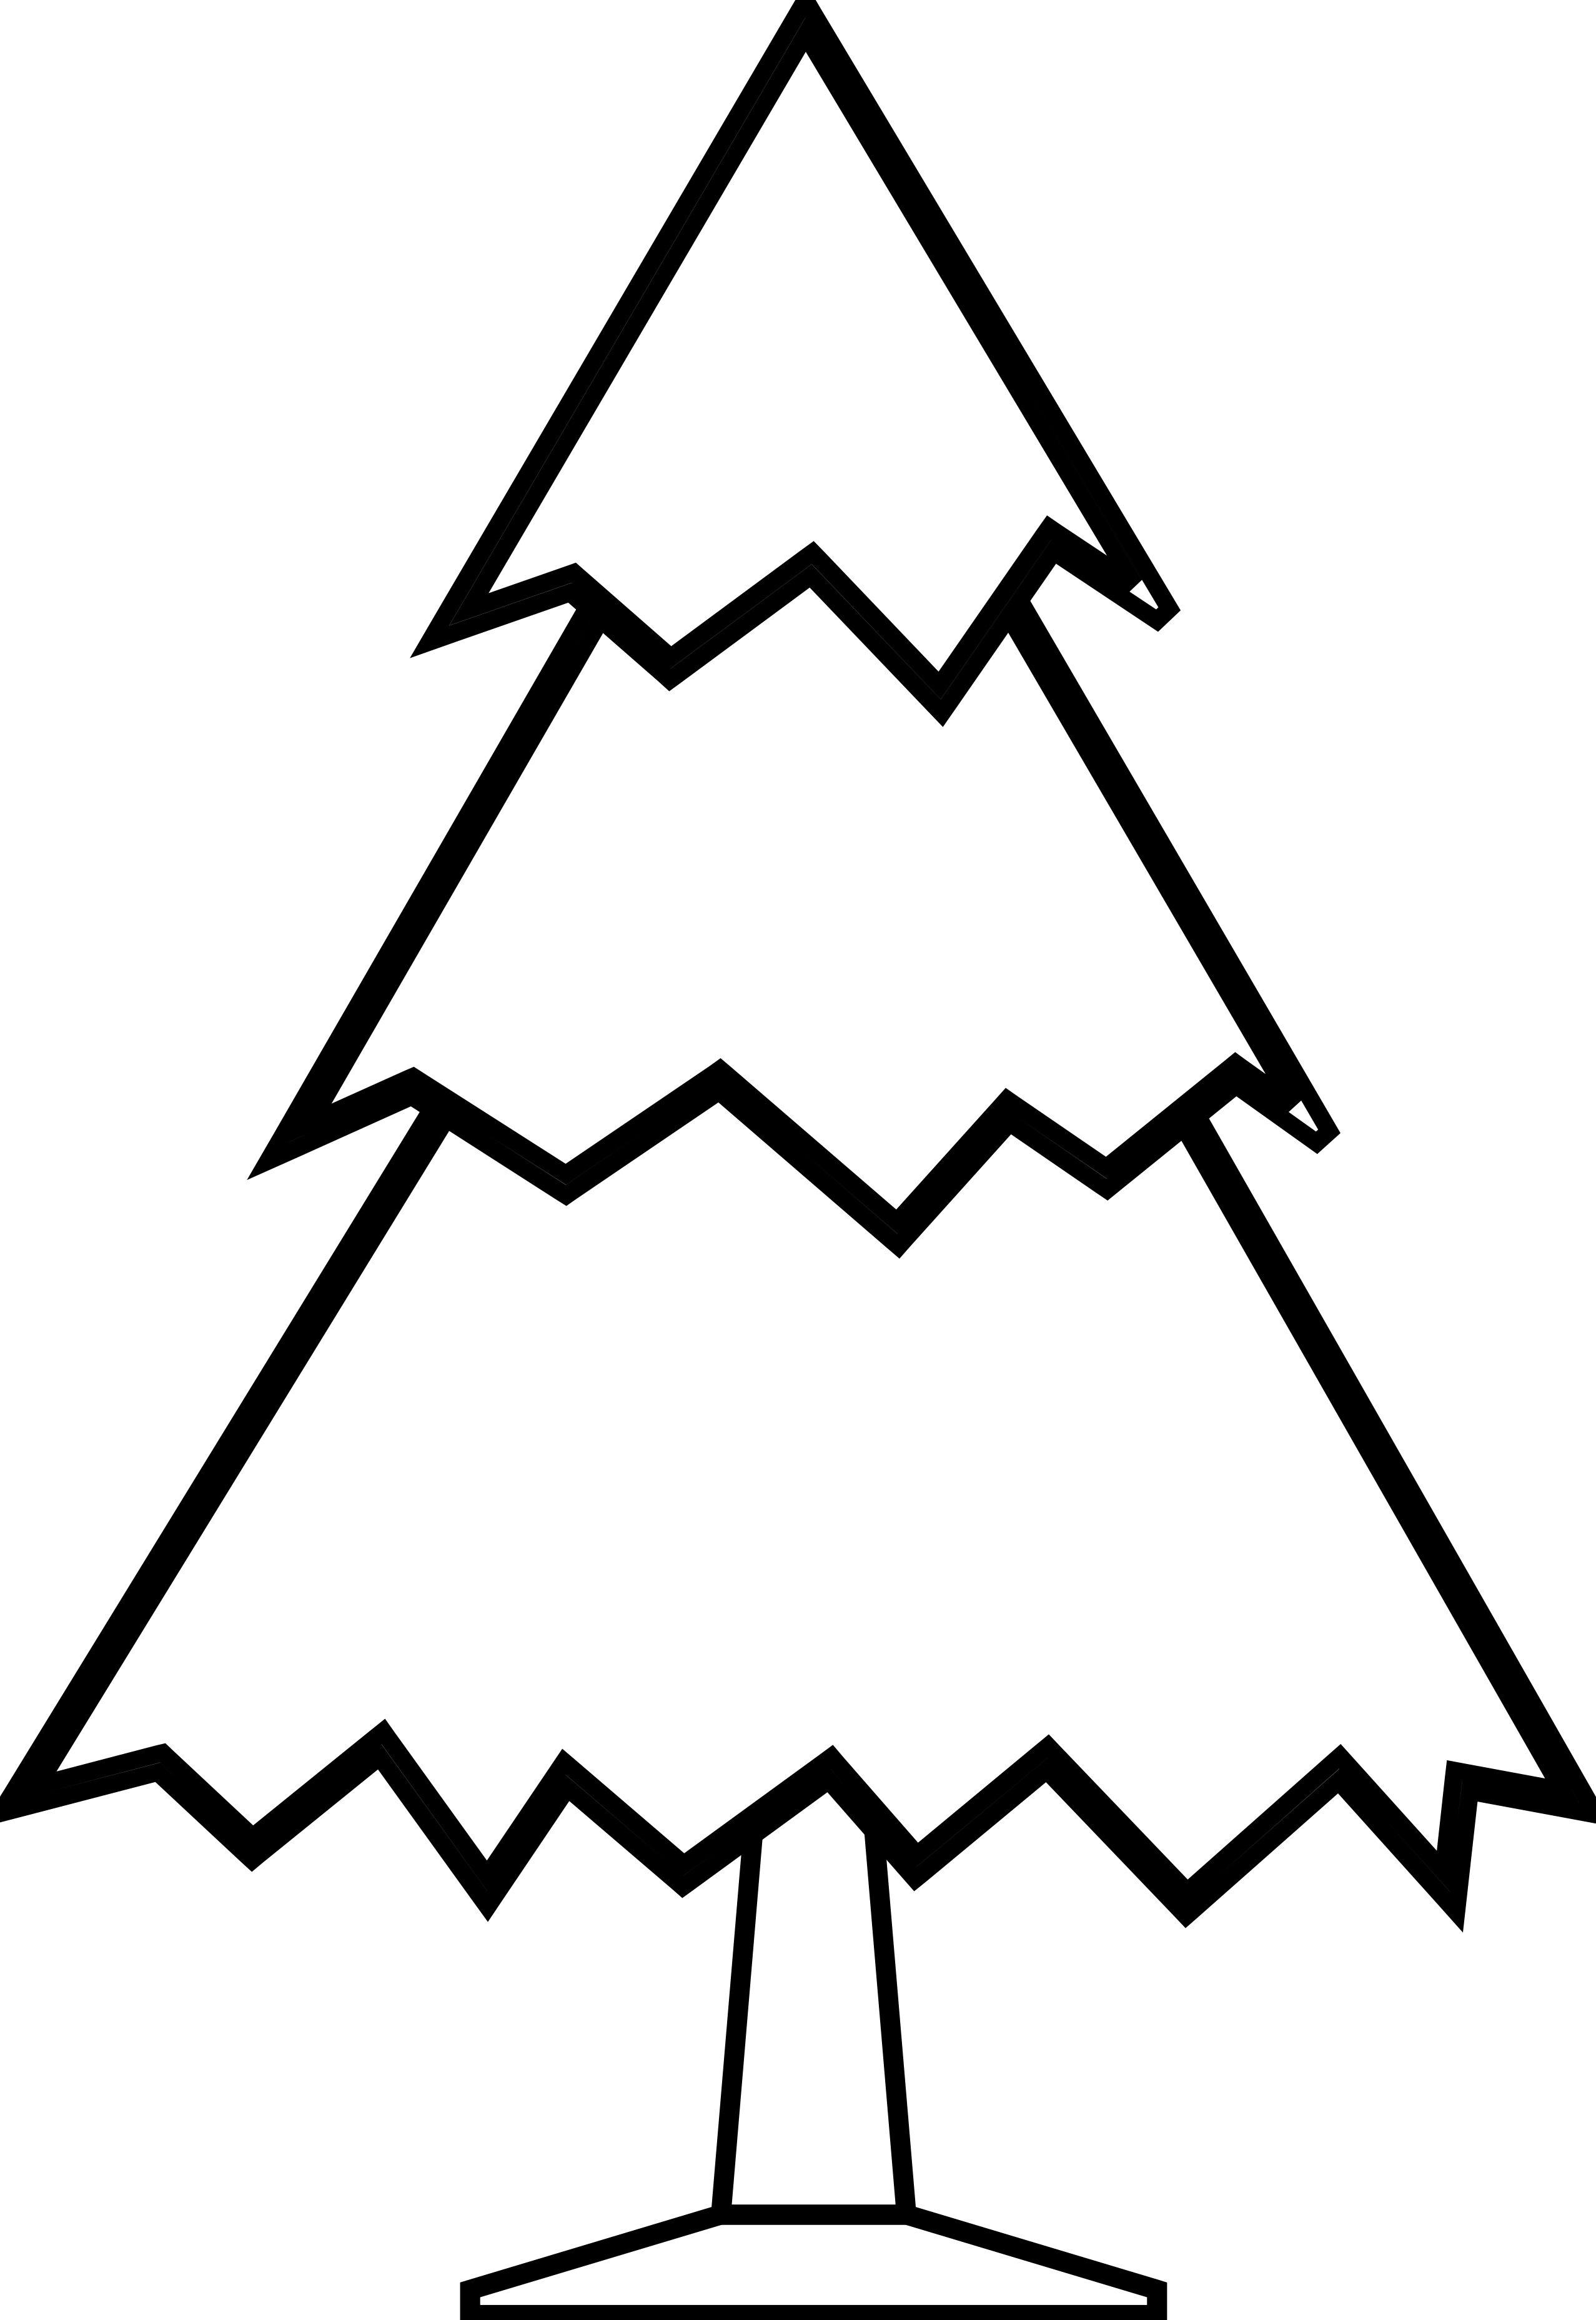 Triangle clipart tree. Free christmas line drawing